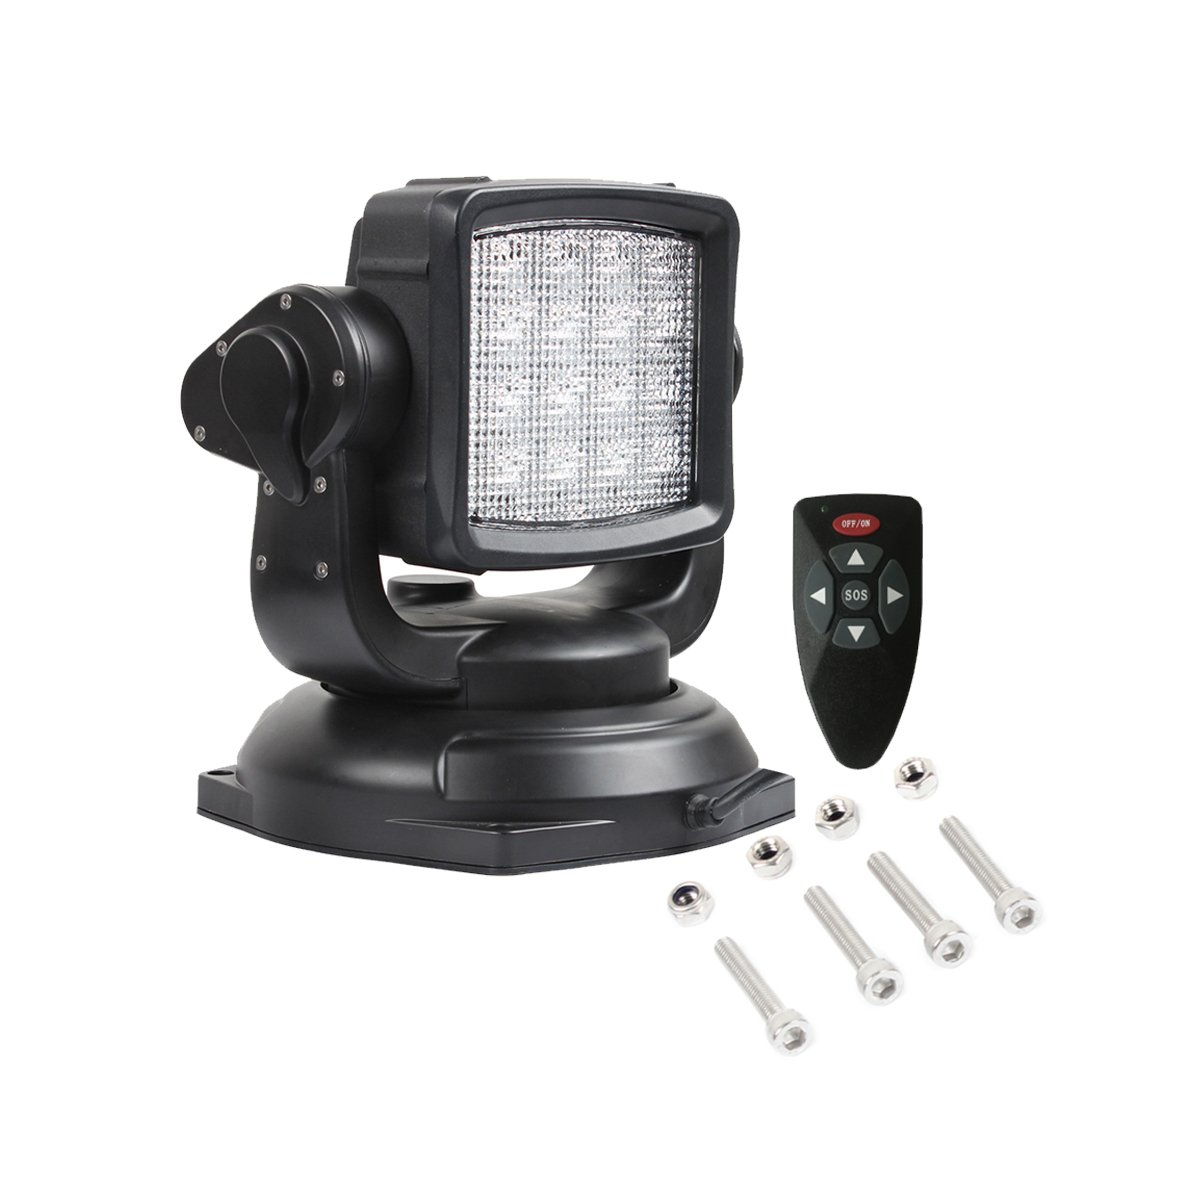 lightronic Remote Control Search-Light 10-30V 360/º 80W CREE LED Rotating Remote Control Work Light Spot for Hummer Jeep Off-Road Vehicles Trucks Boat Home Security Protection Emergency Lighting